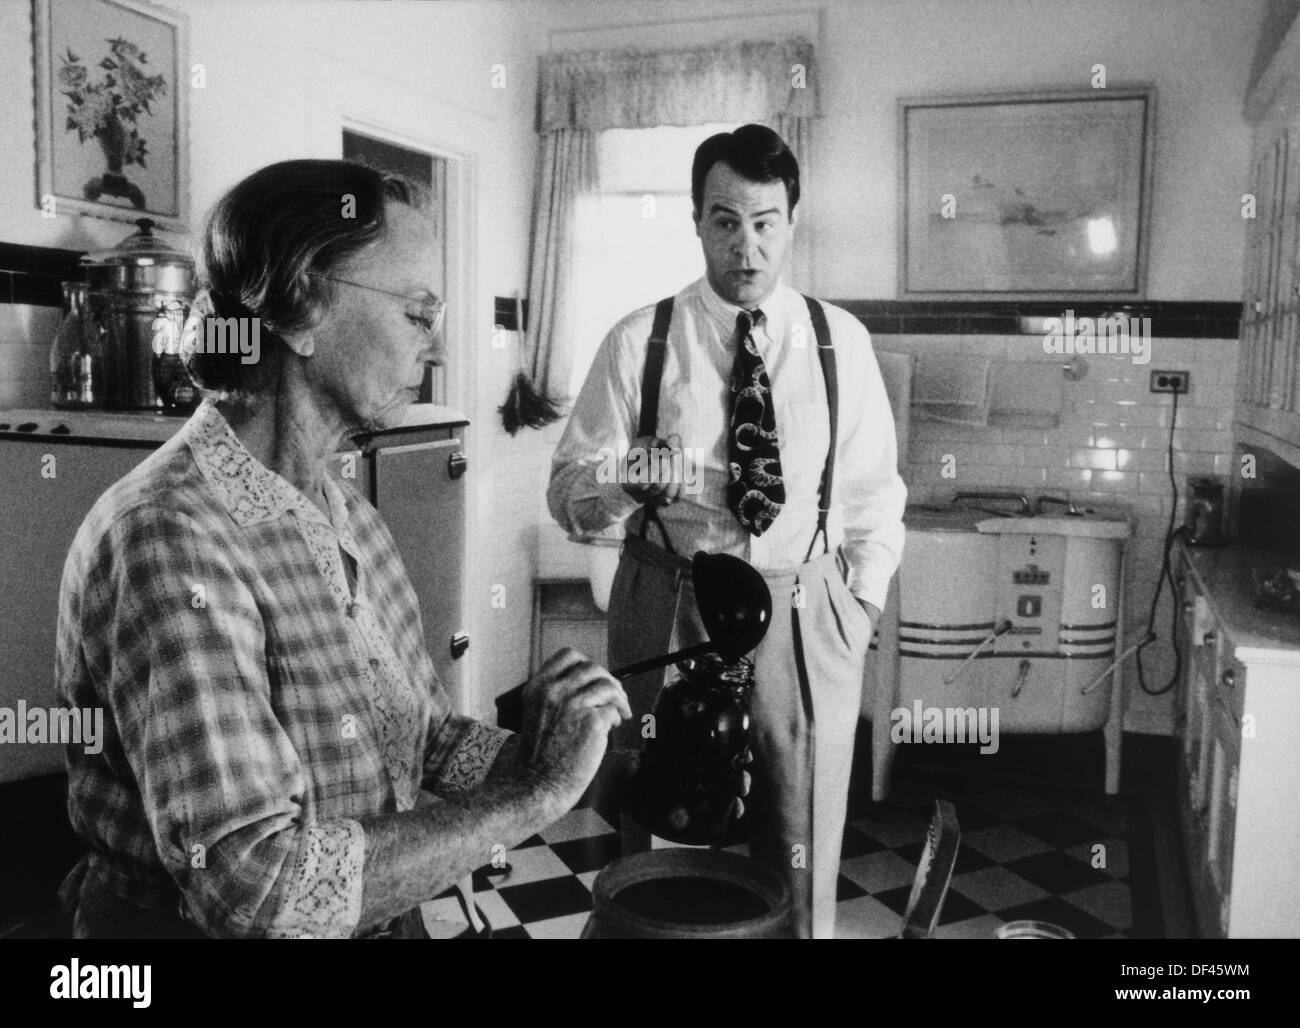 Dan Akroyd and Jessica Tandy, On-Set of the Film, 'Driving Miss Daisy', 1989 - Stock Image